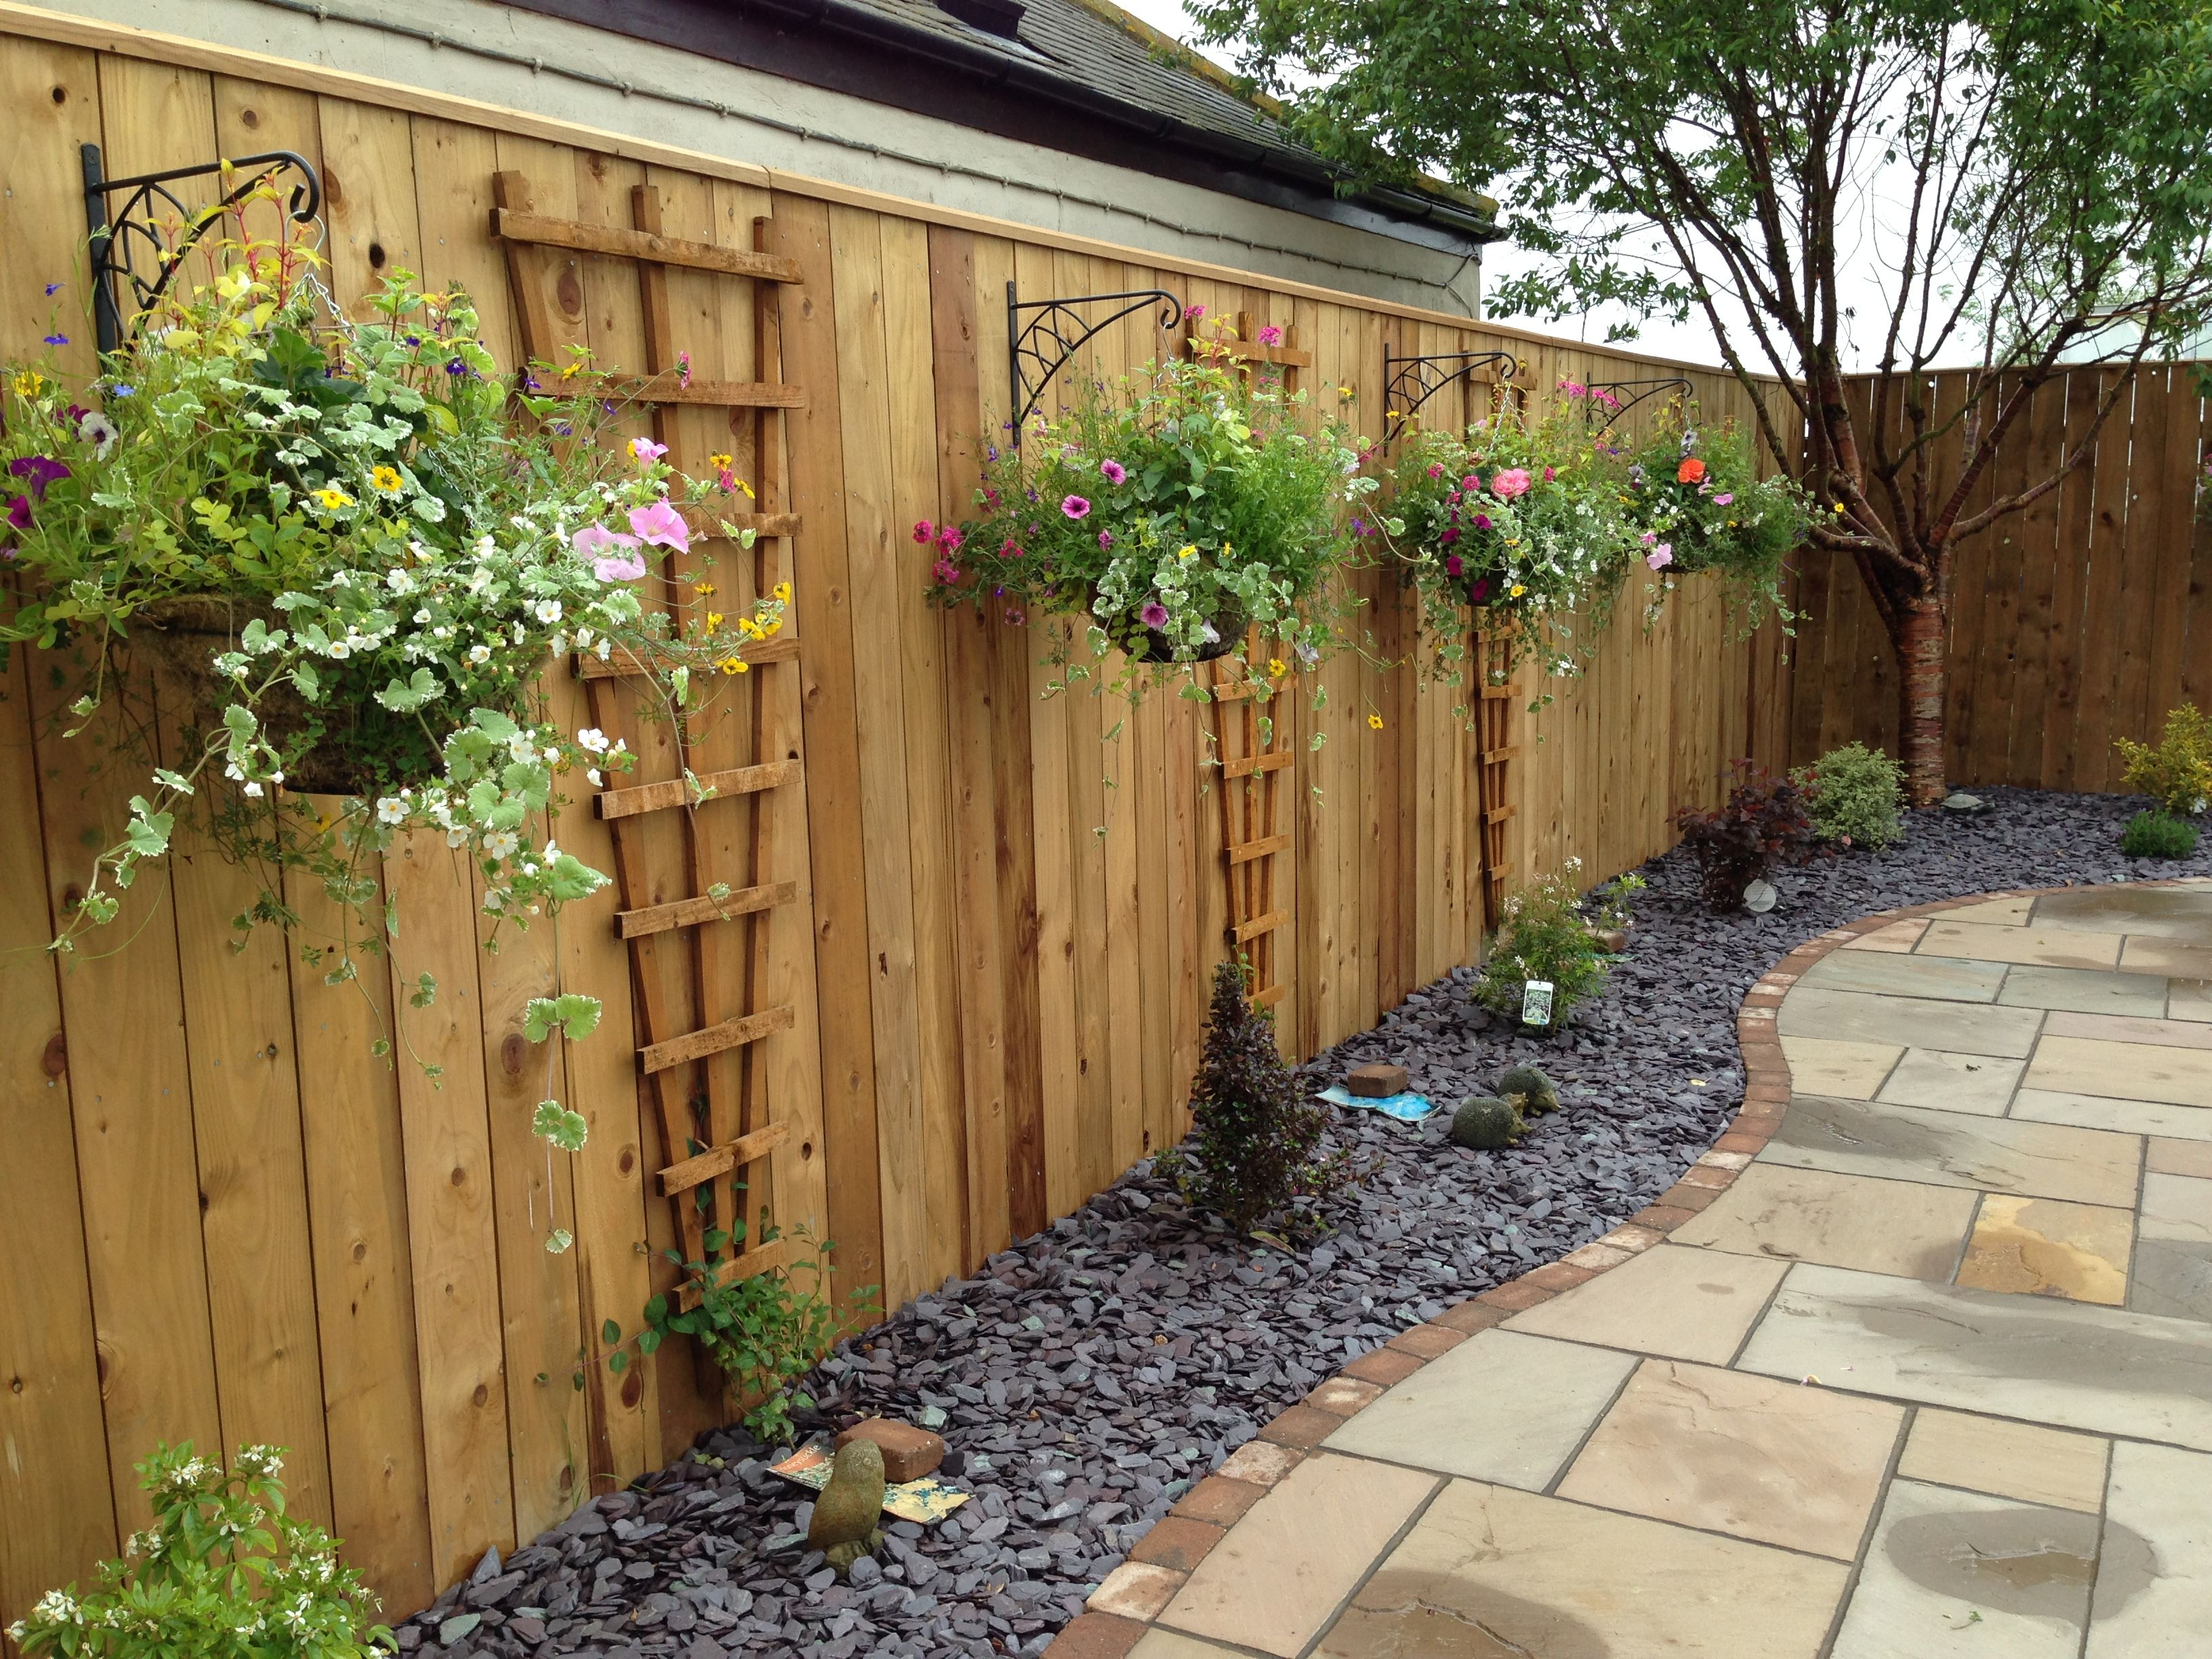 garden borders with plum slate and patio - Google Search | Garden ...